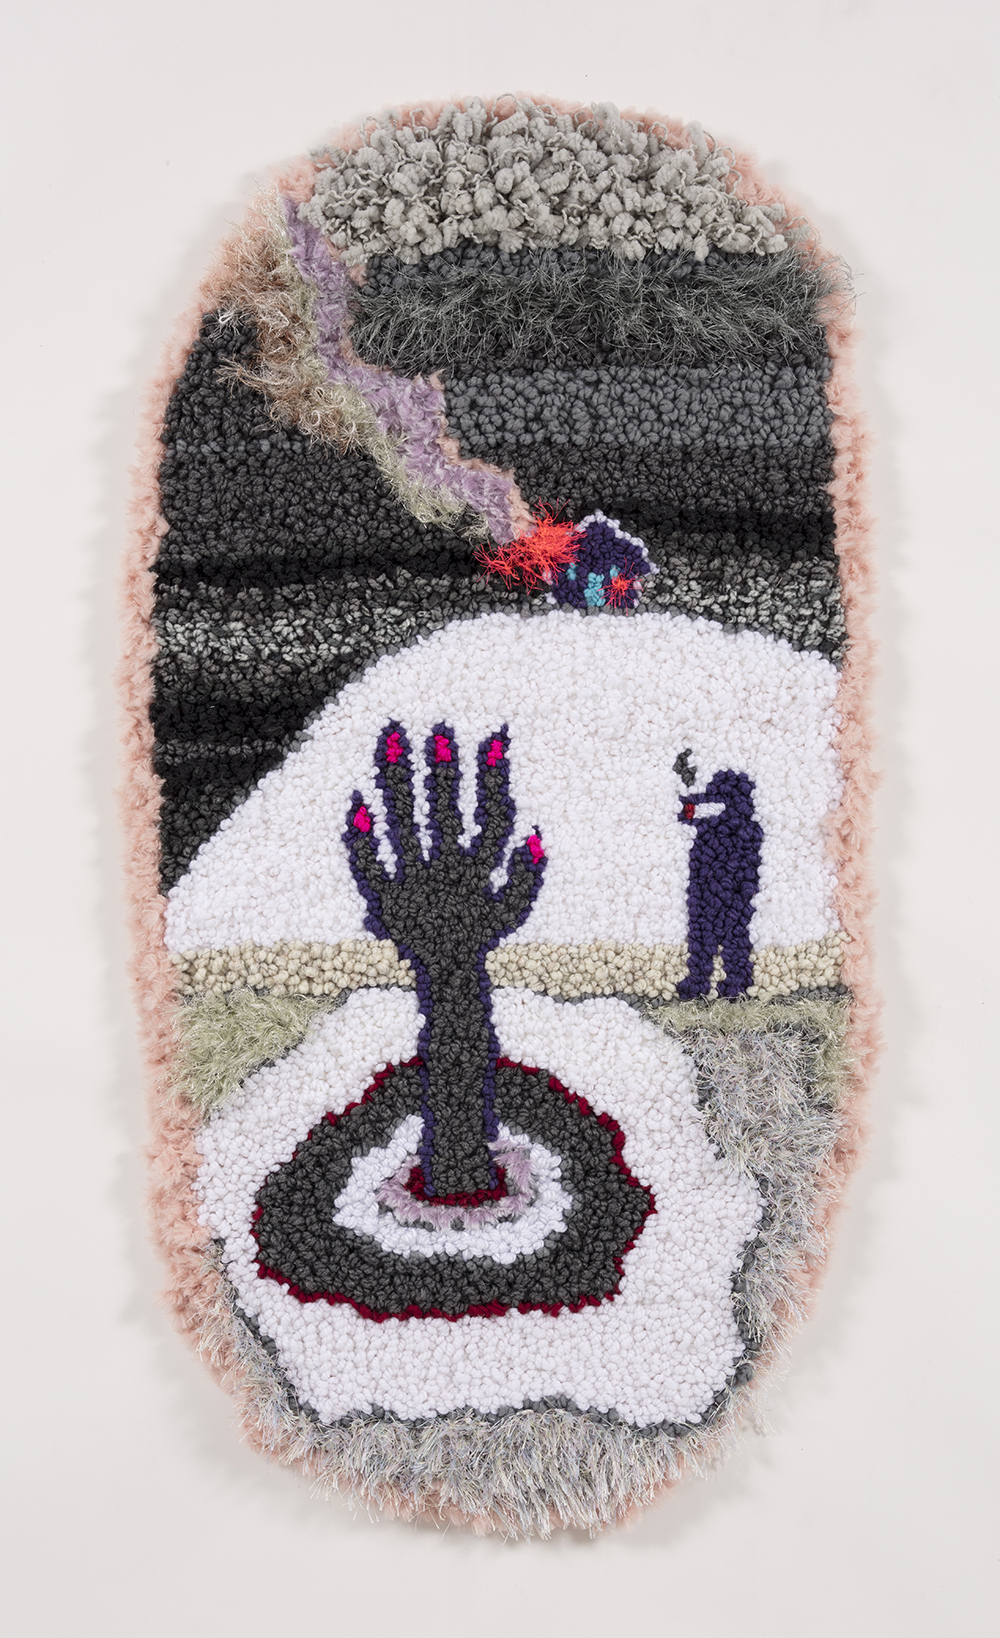 Hannah Epstein.<em> At the river with my baby</em>, 2019. Acrylic, polyester, wool, 45 x 23 inches (114.3 x 58.4 cm)